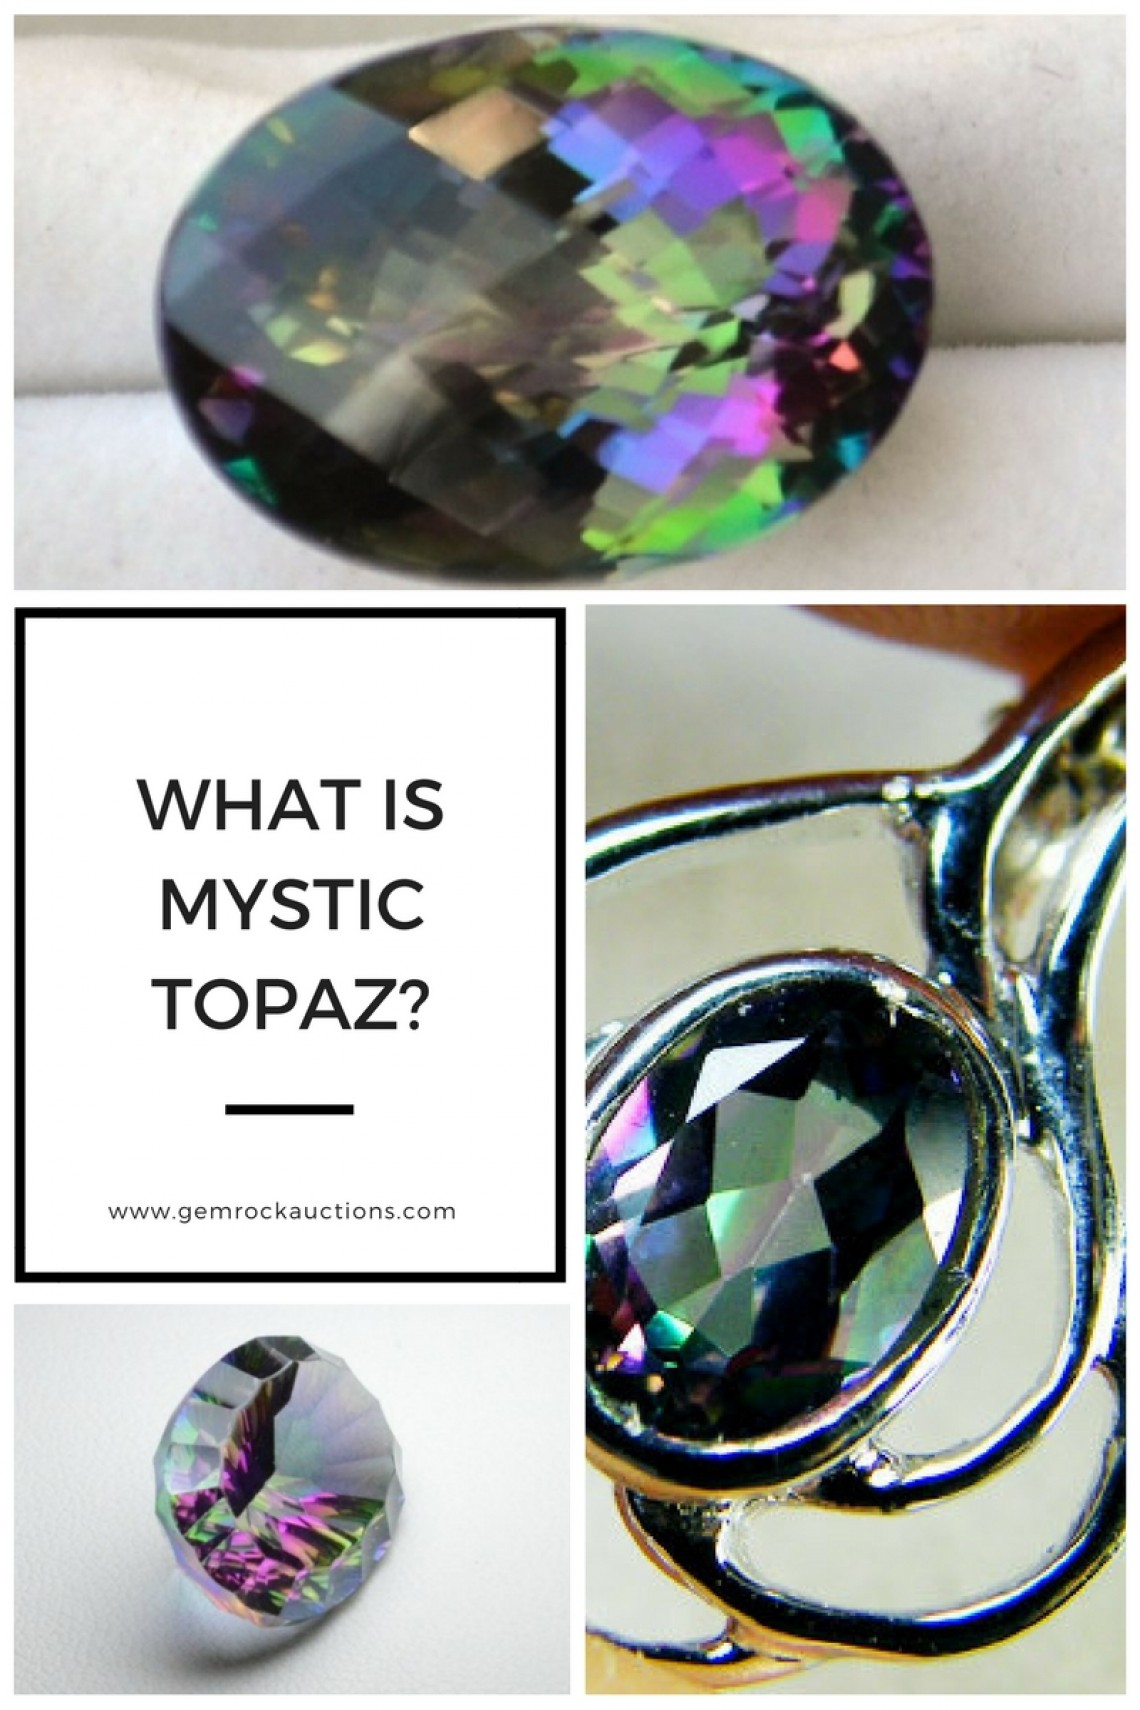 topaz body collage arts vaughn jpg jewelry gemstone mystic